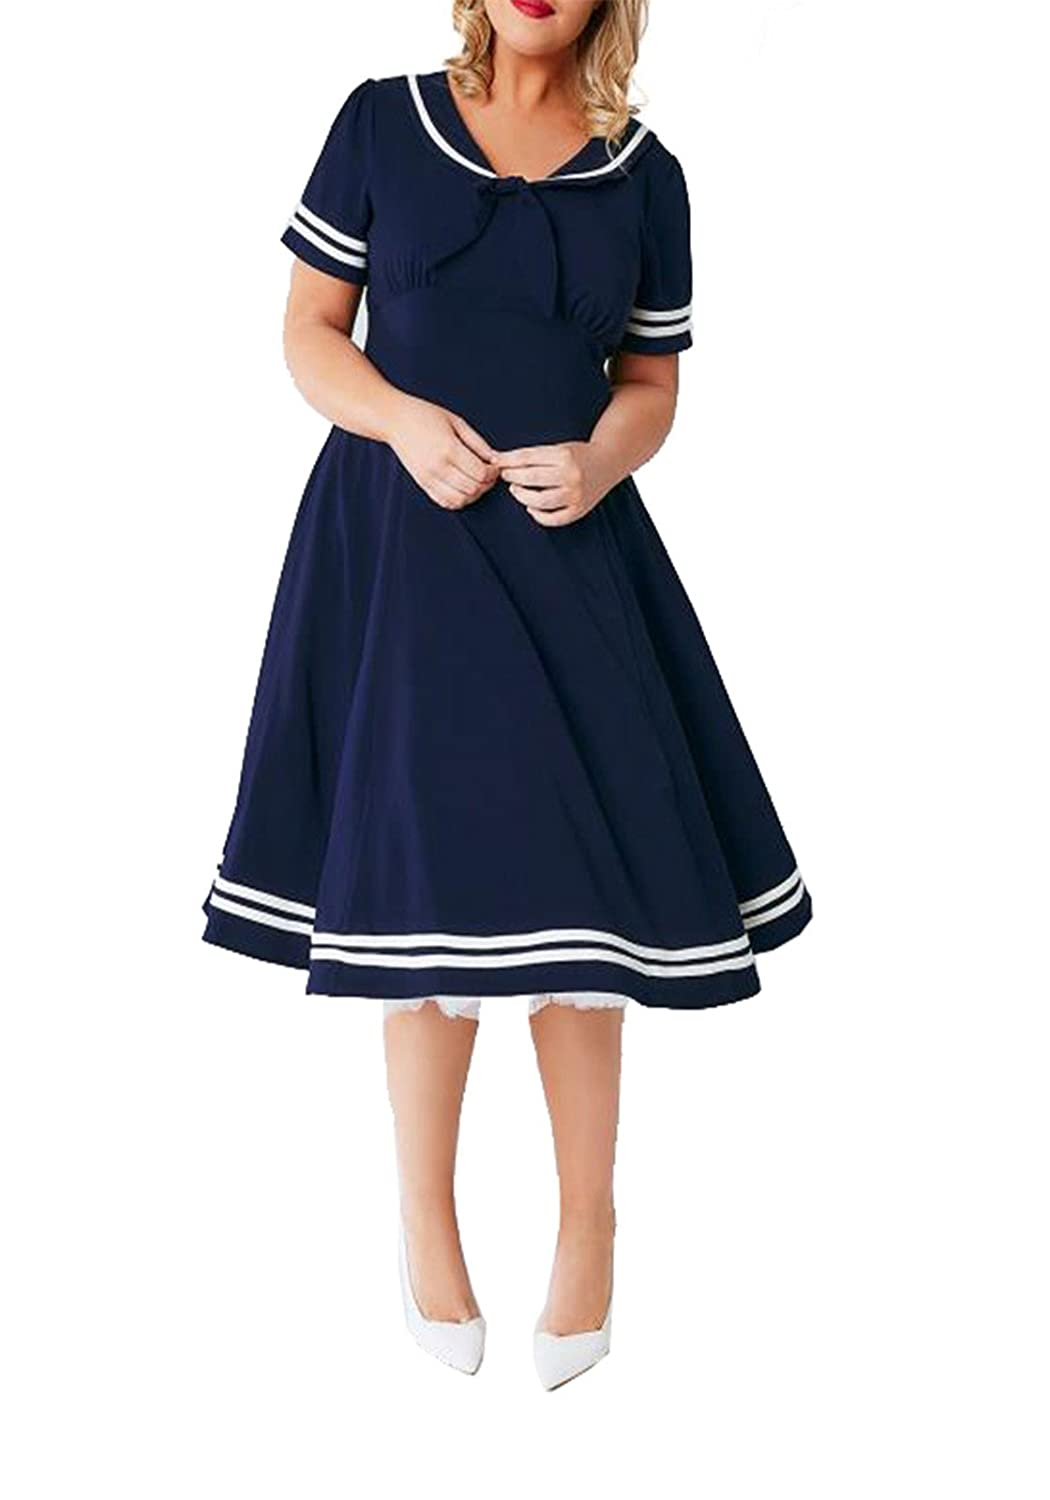 Sailor Dresses, Nautical Theme Dress, WW2 Dresses KISSMILK Womens Plus Navy Sailor Collar A Line Flare Ambeleside Dress $22.99 AT vintagedancer.com